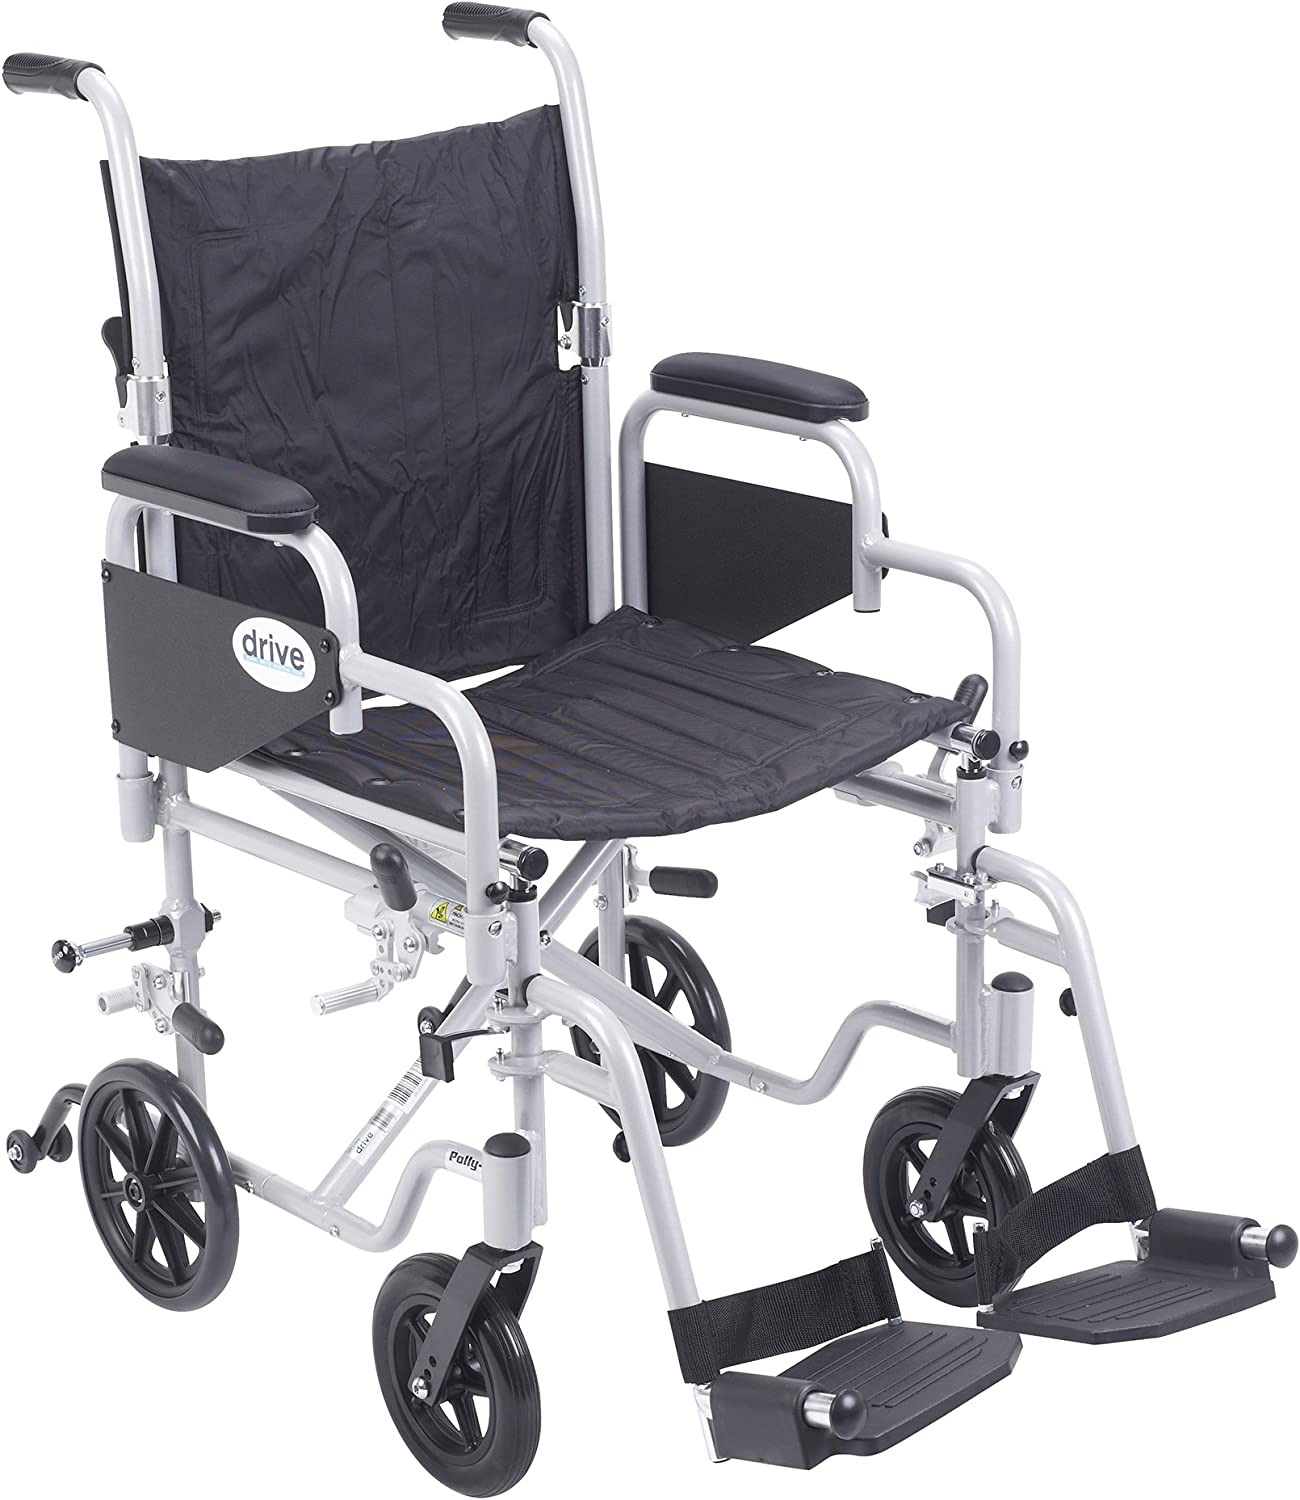 "Drive Medical Poly Fly Light Weight Transport Chair Wheelchair with Swing-Away Footrest, Silver, 18"" 81FRGe4-inL"